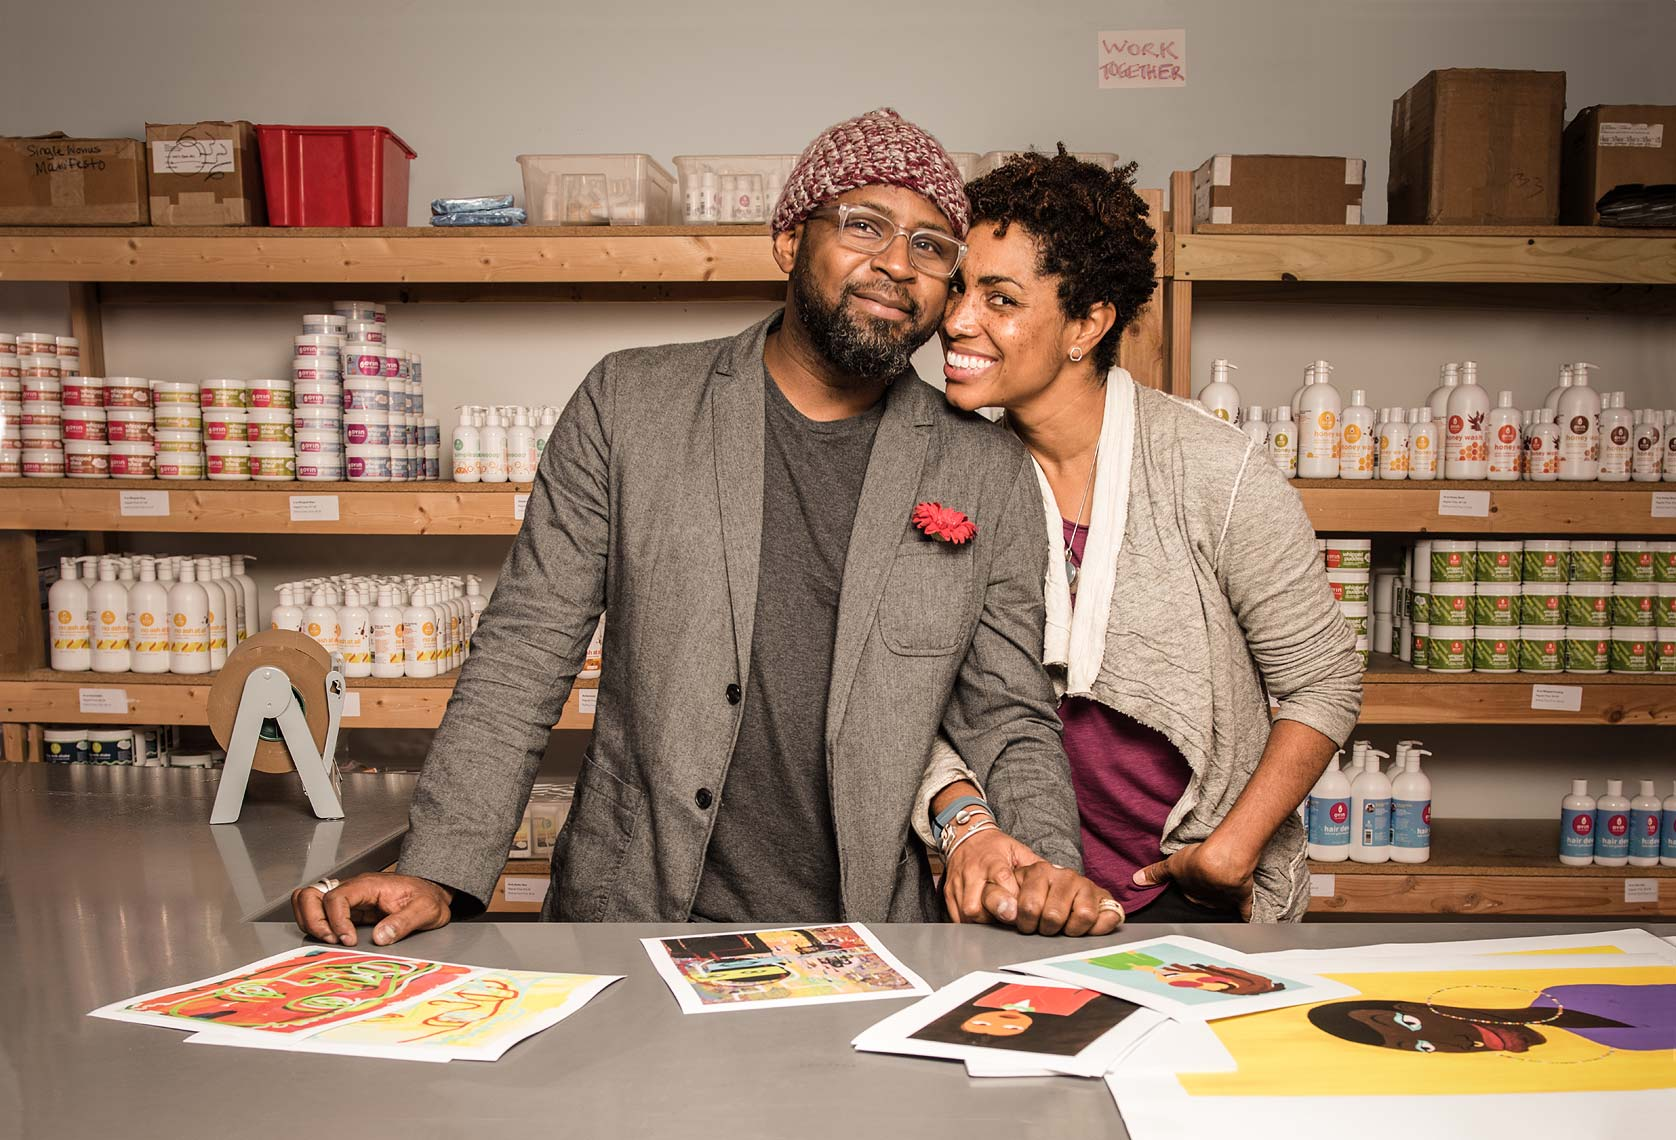 A smiling African-American couple holding hands in a workspace environment